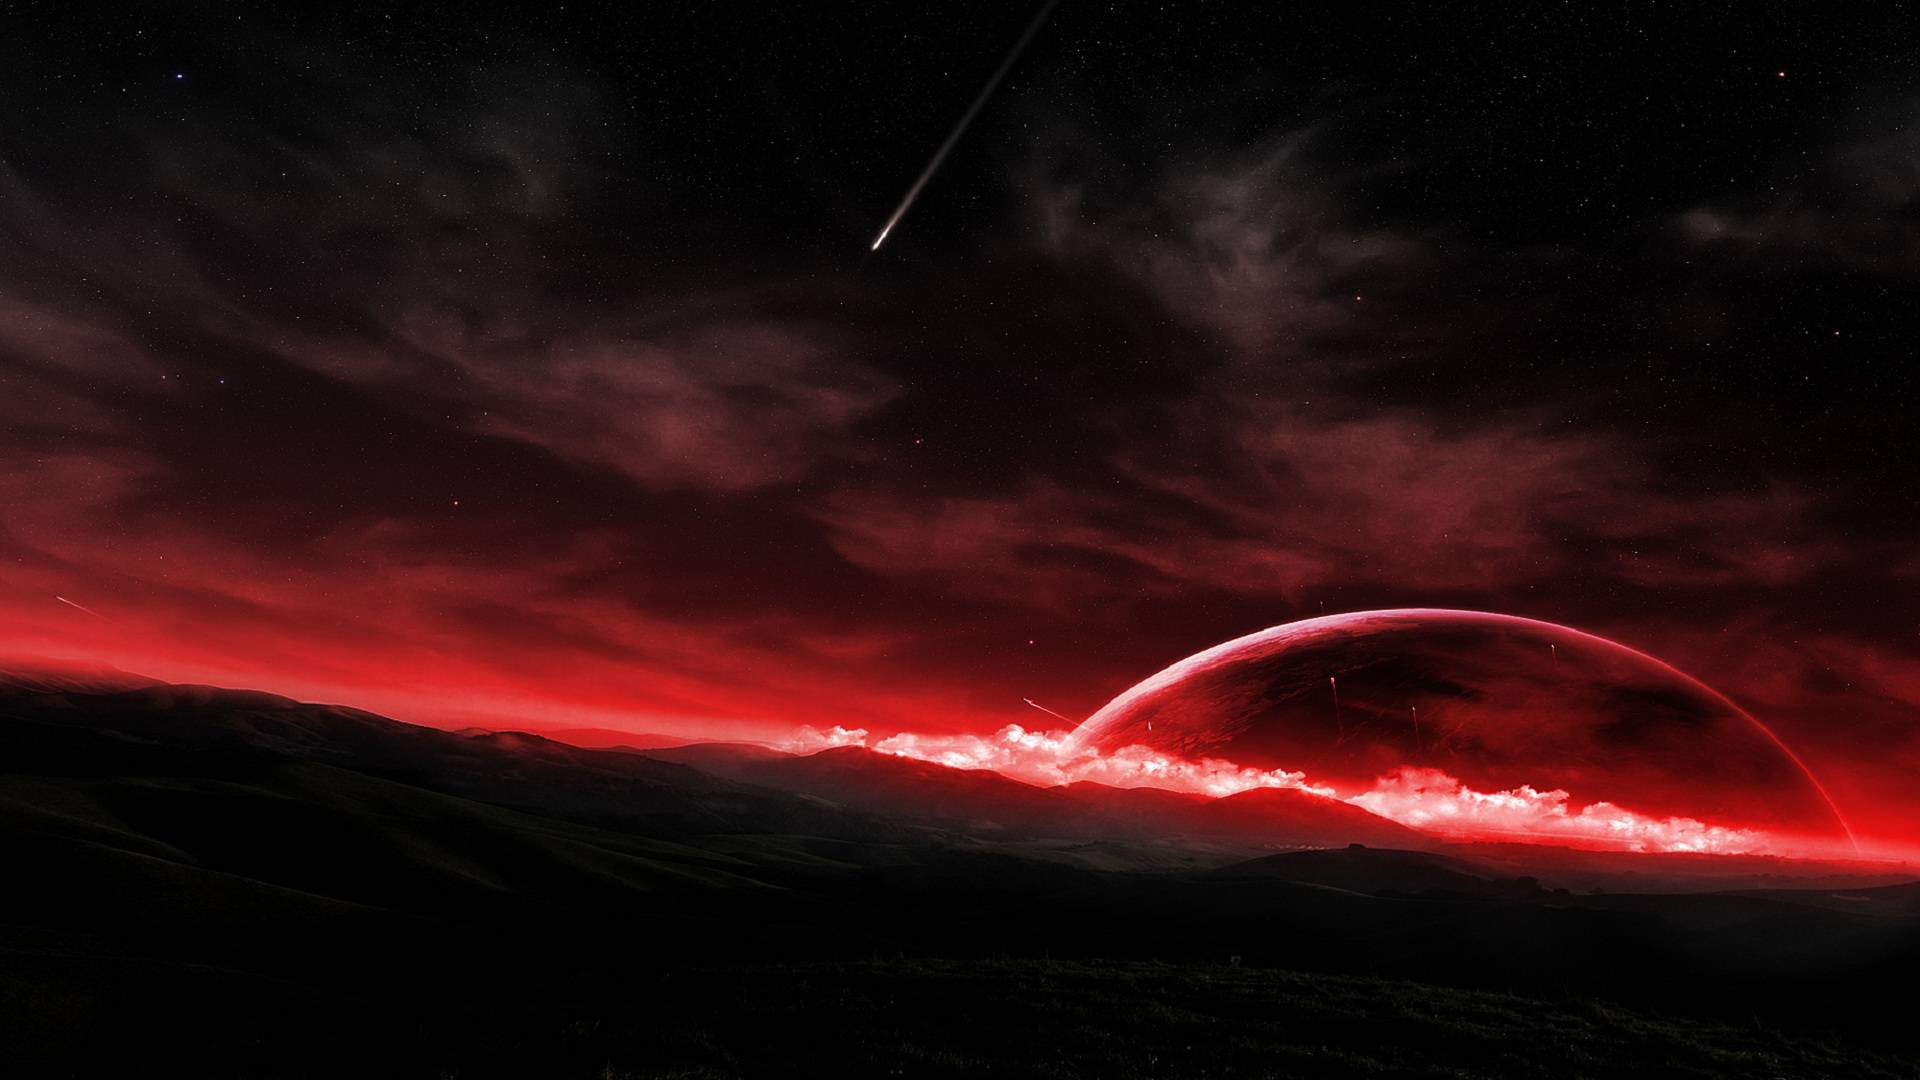 space red stars star shooting star wallpaper jpg Black Background 1920x1080